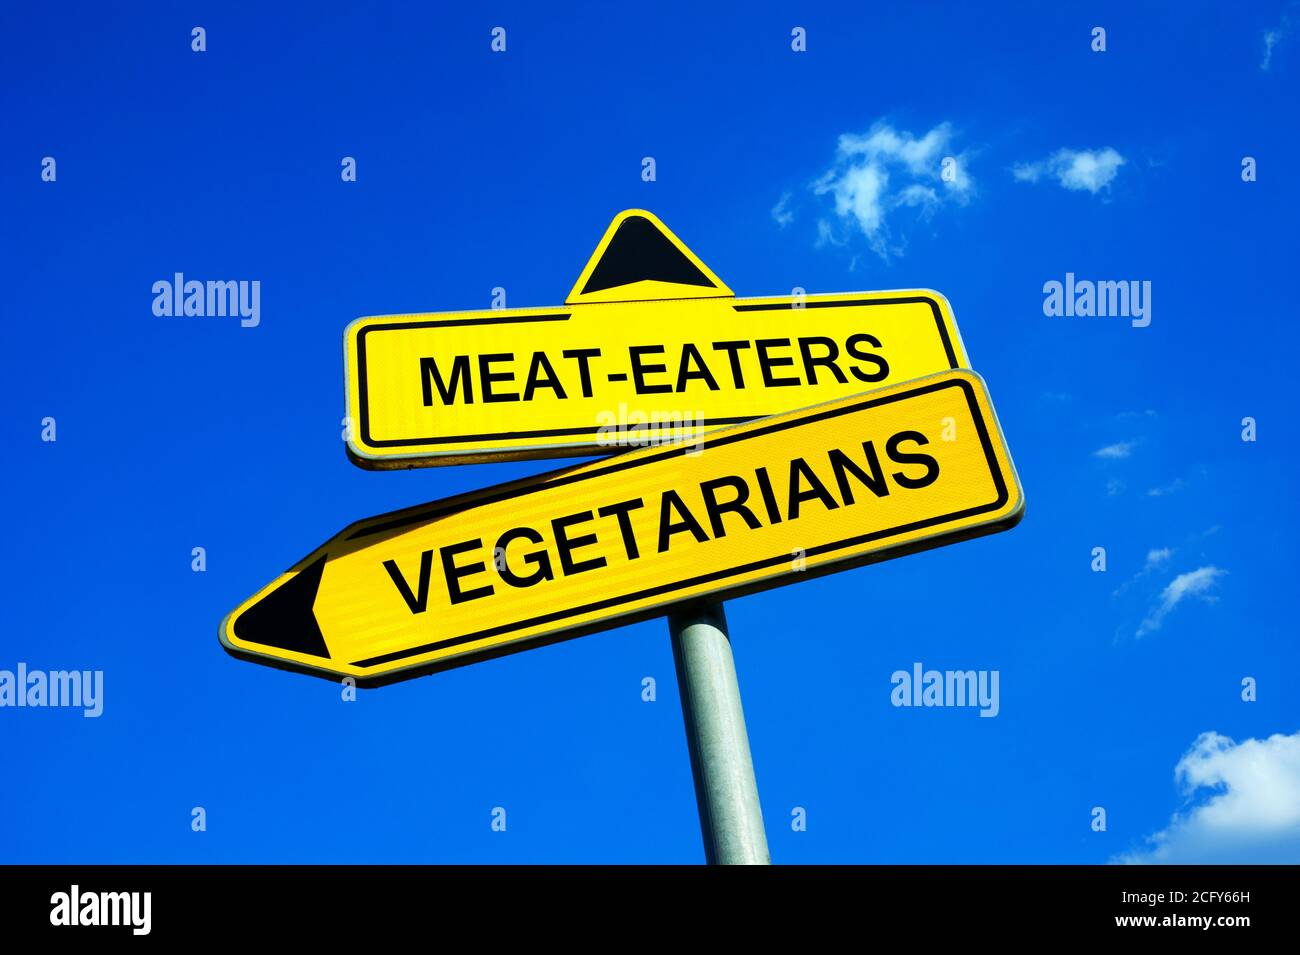 Meat-eaters on Vegetarians - Traffic sign with two options. Decision to not kill animals and eat meat. Question of nutrition, health and ethics Stock Photo